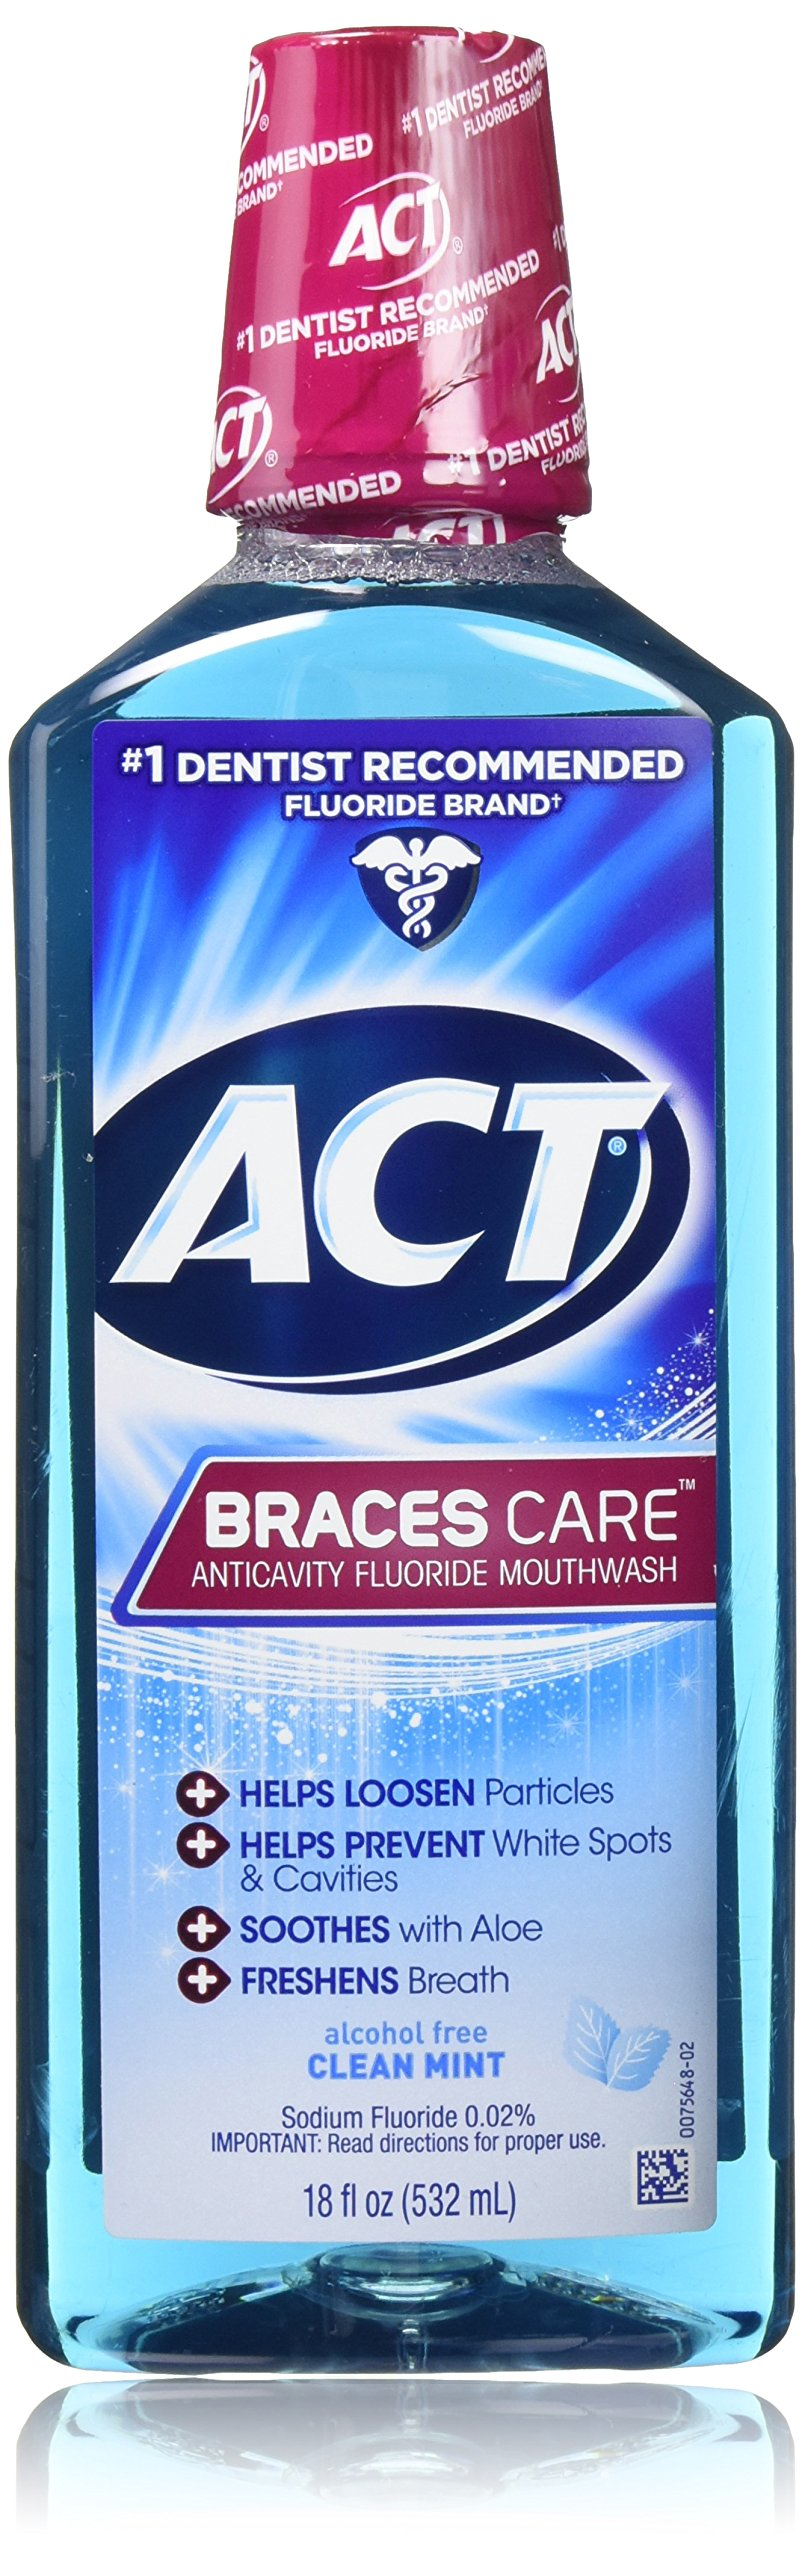 Act Braces Care Anticavity Flouride Mouthwash 18 Ounce 2 Pack